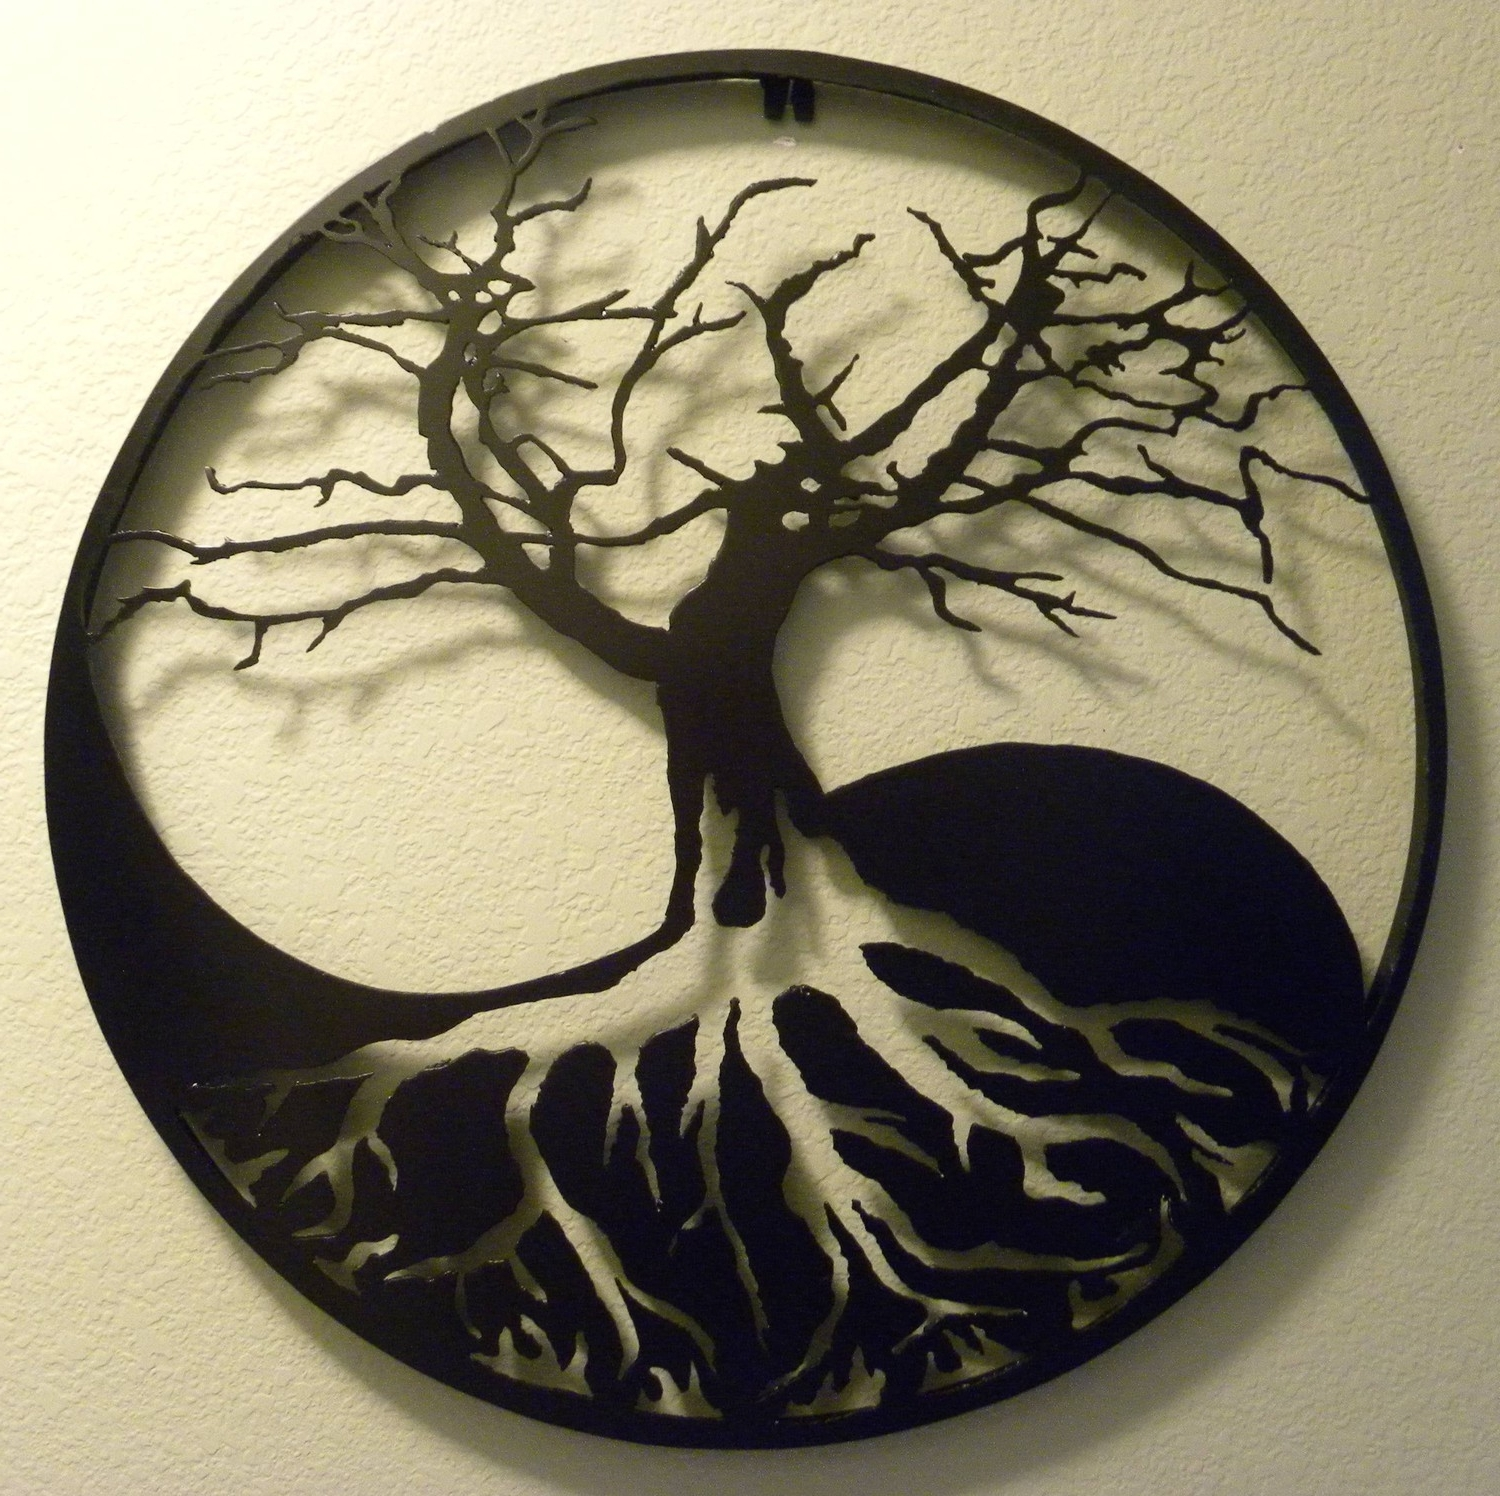 Yin Yang Wall Art Inside Preferred Wall Art Ideas Design : Tree White Yin Yang Wall Art Black Root (View 13 of 15)